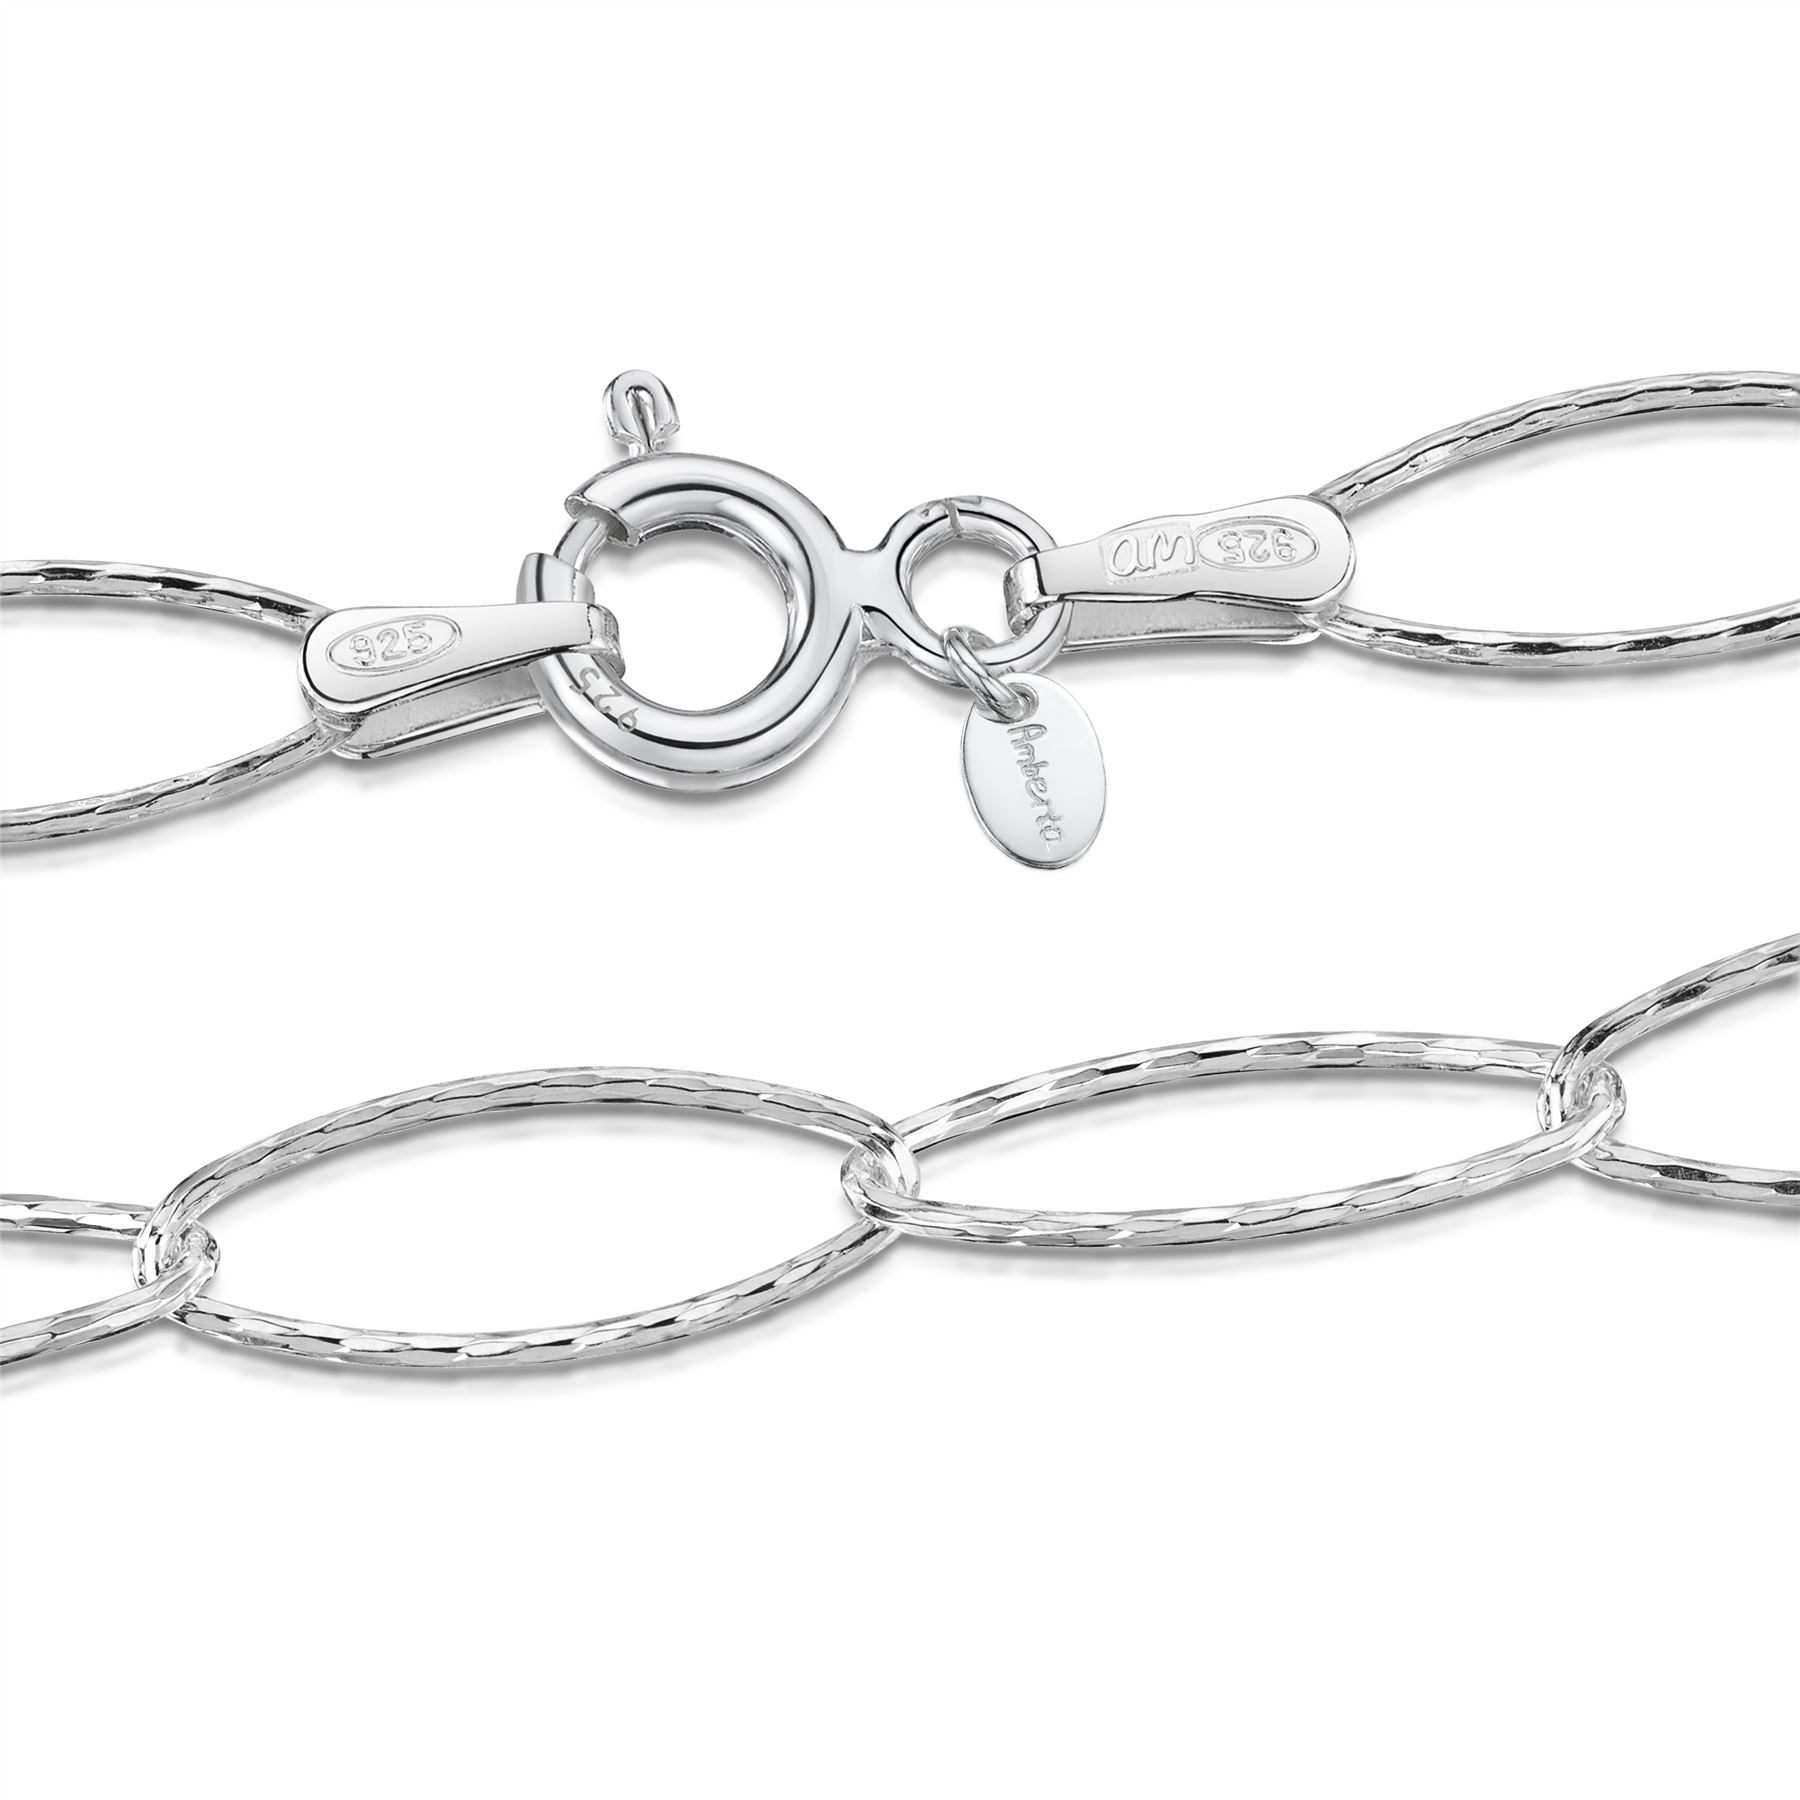 Amberta-Genuine-Real-925-Sterling-Silver-Bracelet-Bangle-Chain-Made-in-Italy thumbnail 109